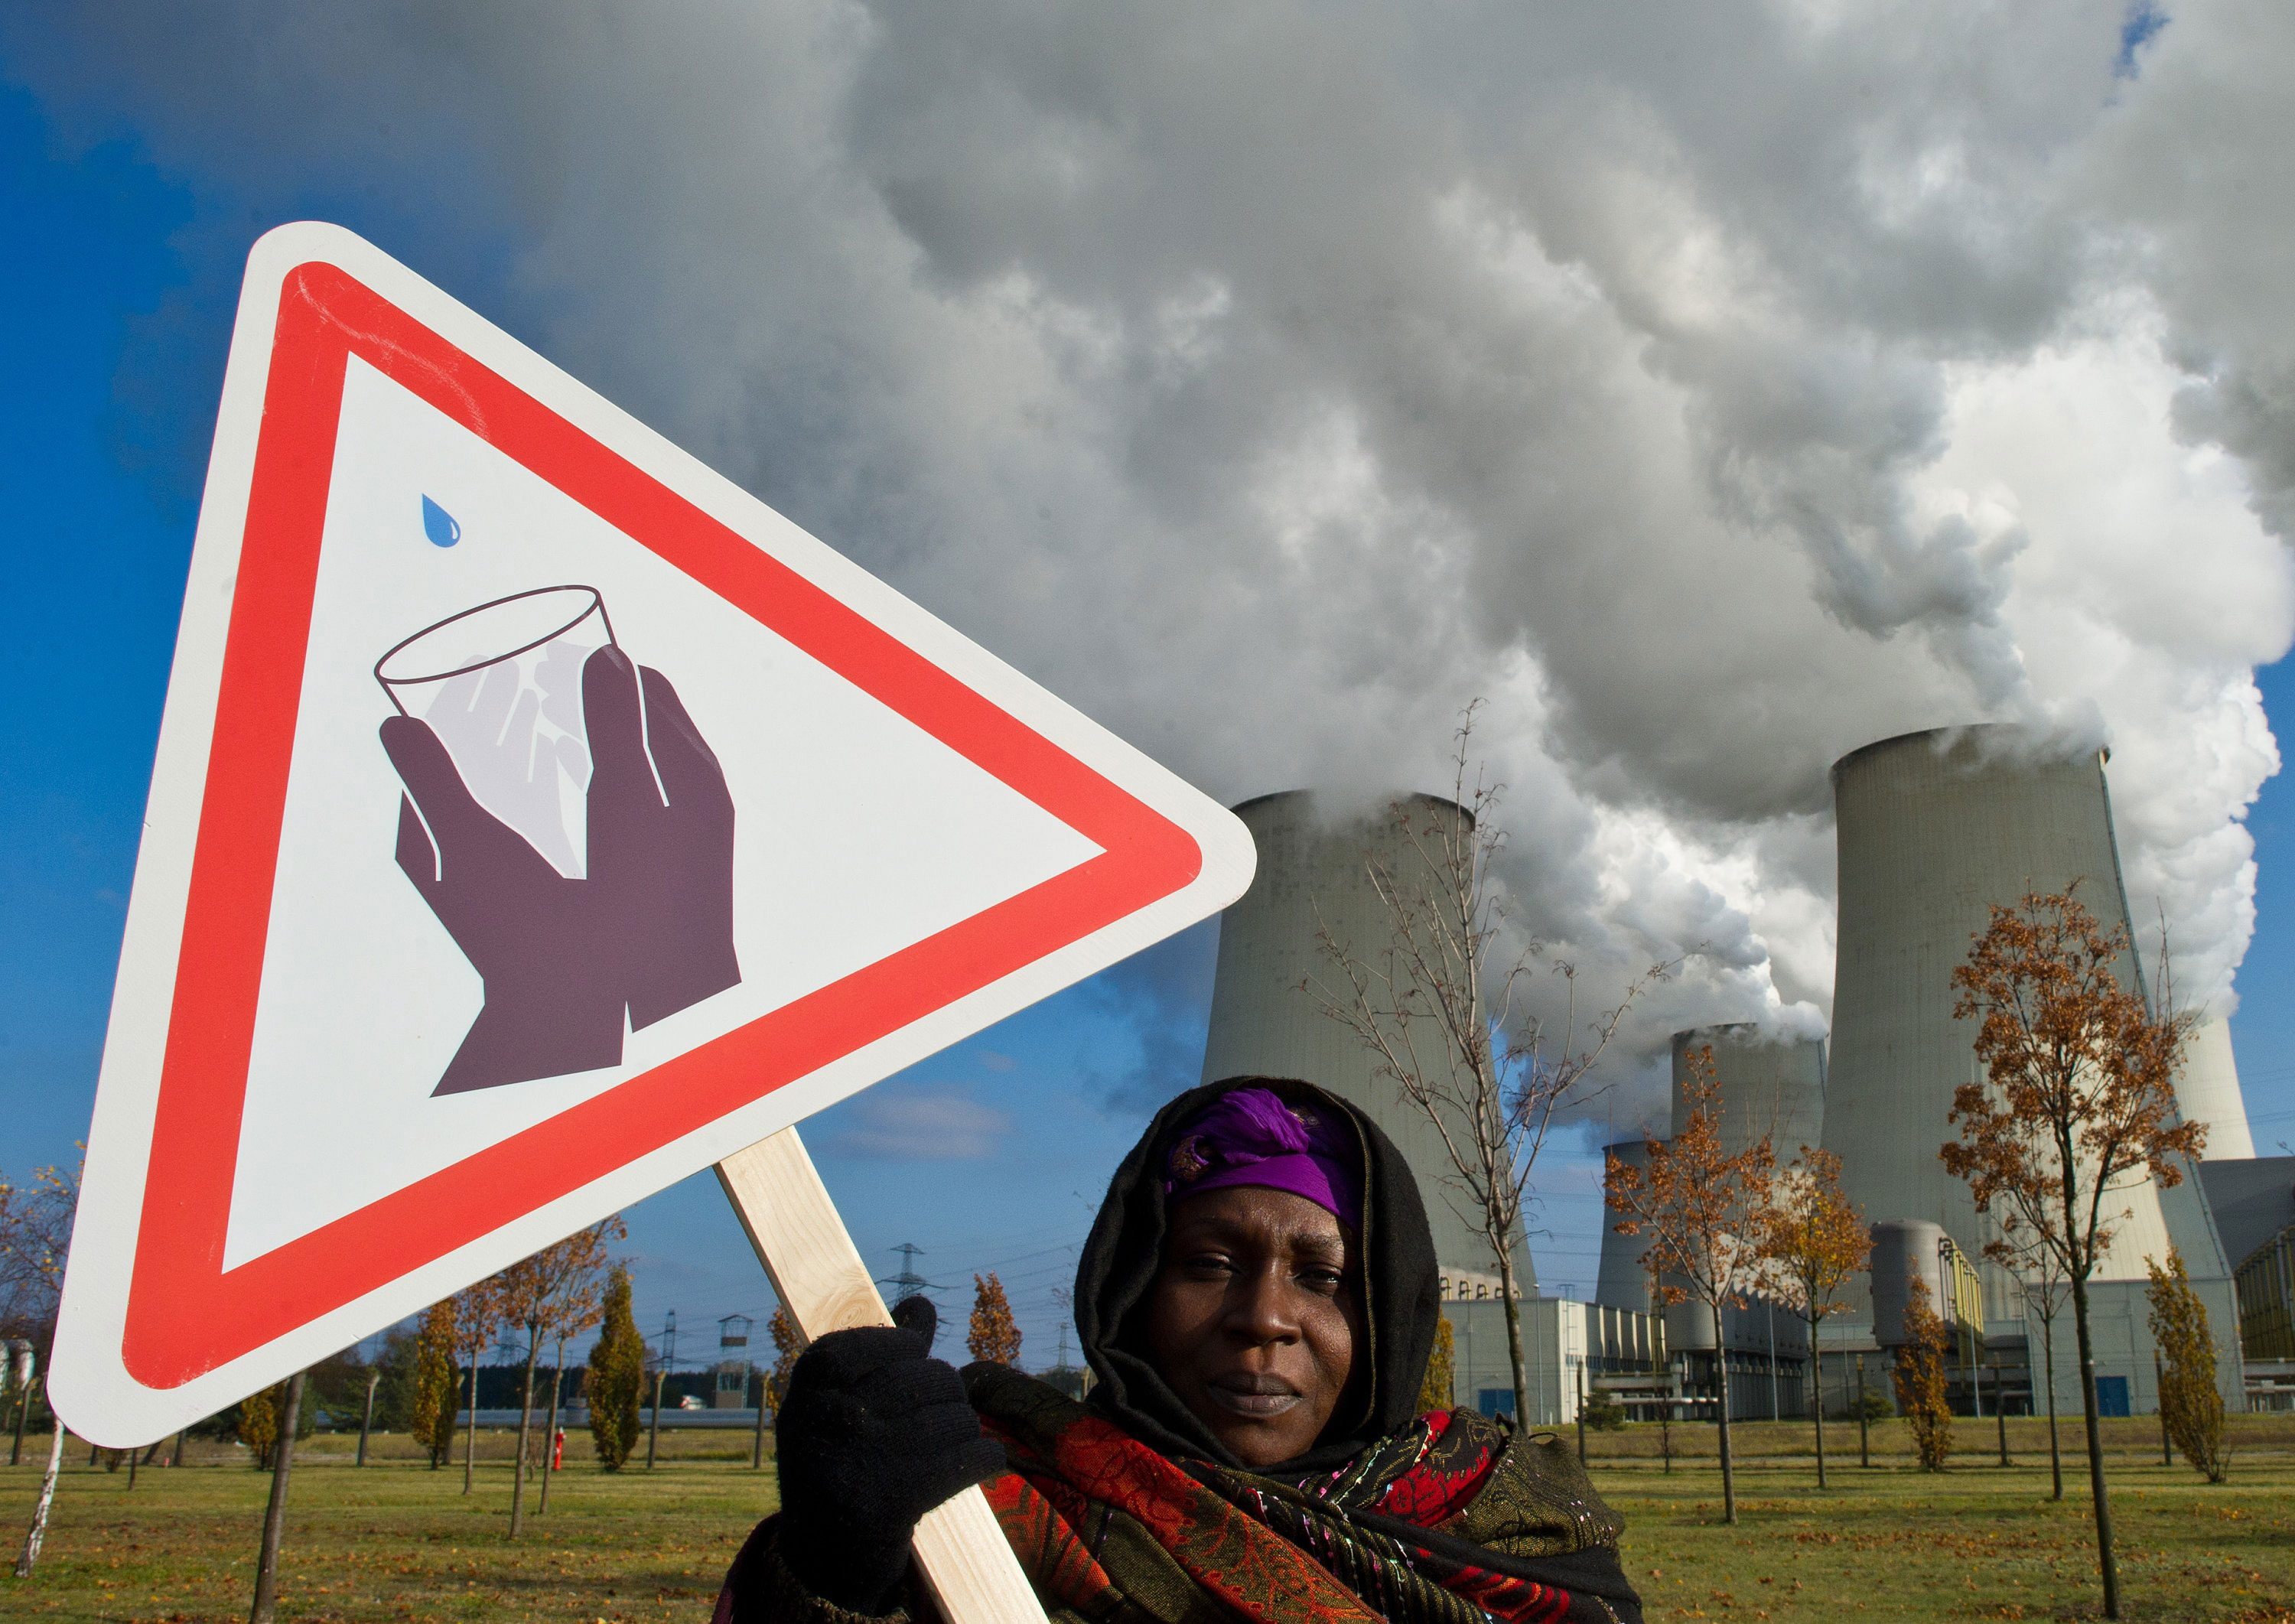 Hauwa Umar-Mustapha from Nigeria, witnesses to climate change, stands with a sign for the shortage of drinking water in front of the cooling towers of the brown coal power plant of Vattenfall AG power company in Jaenschwalde, Germany, Nov. 11, 2011.